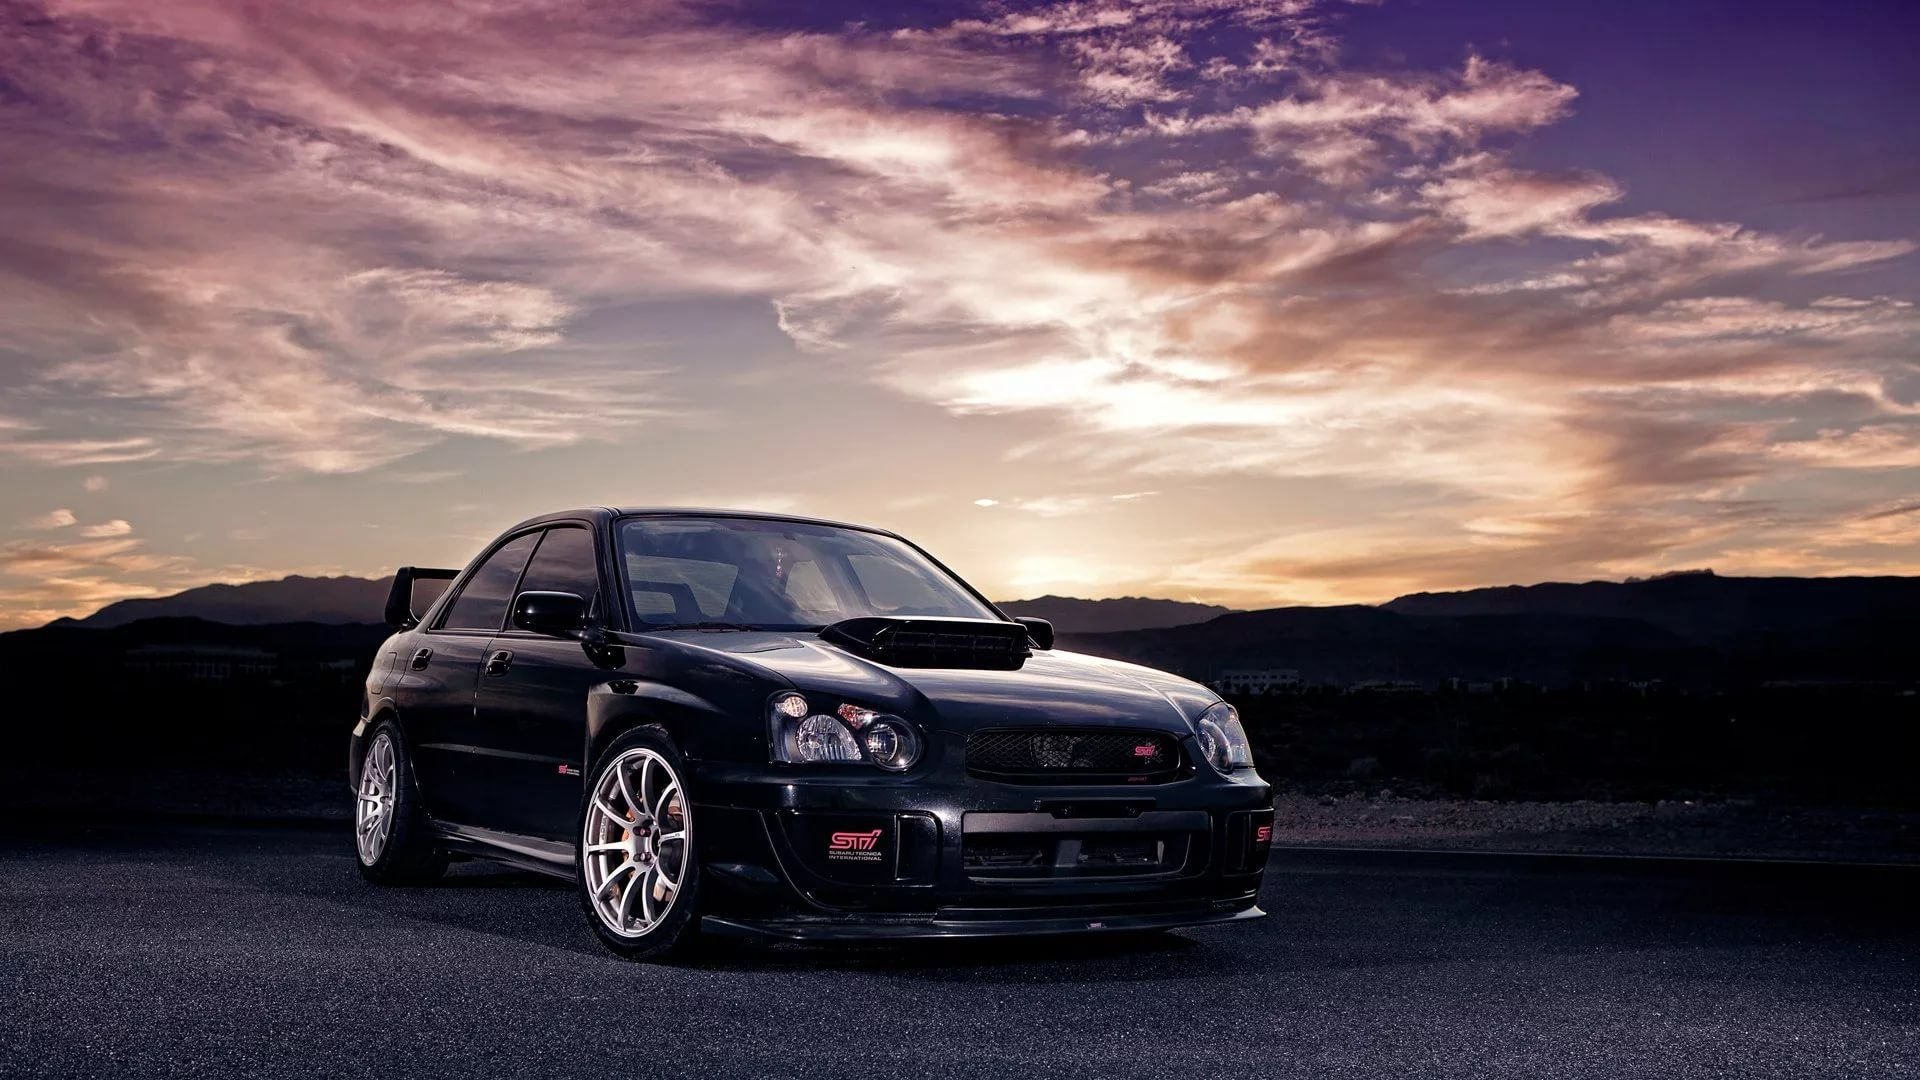 Subaru WRX wallpaper download